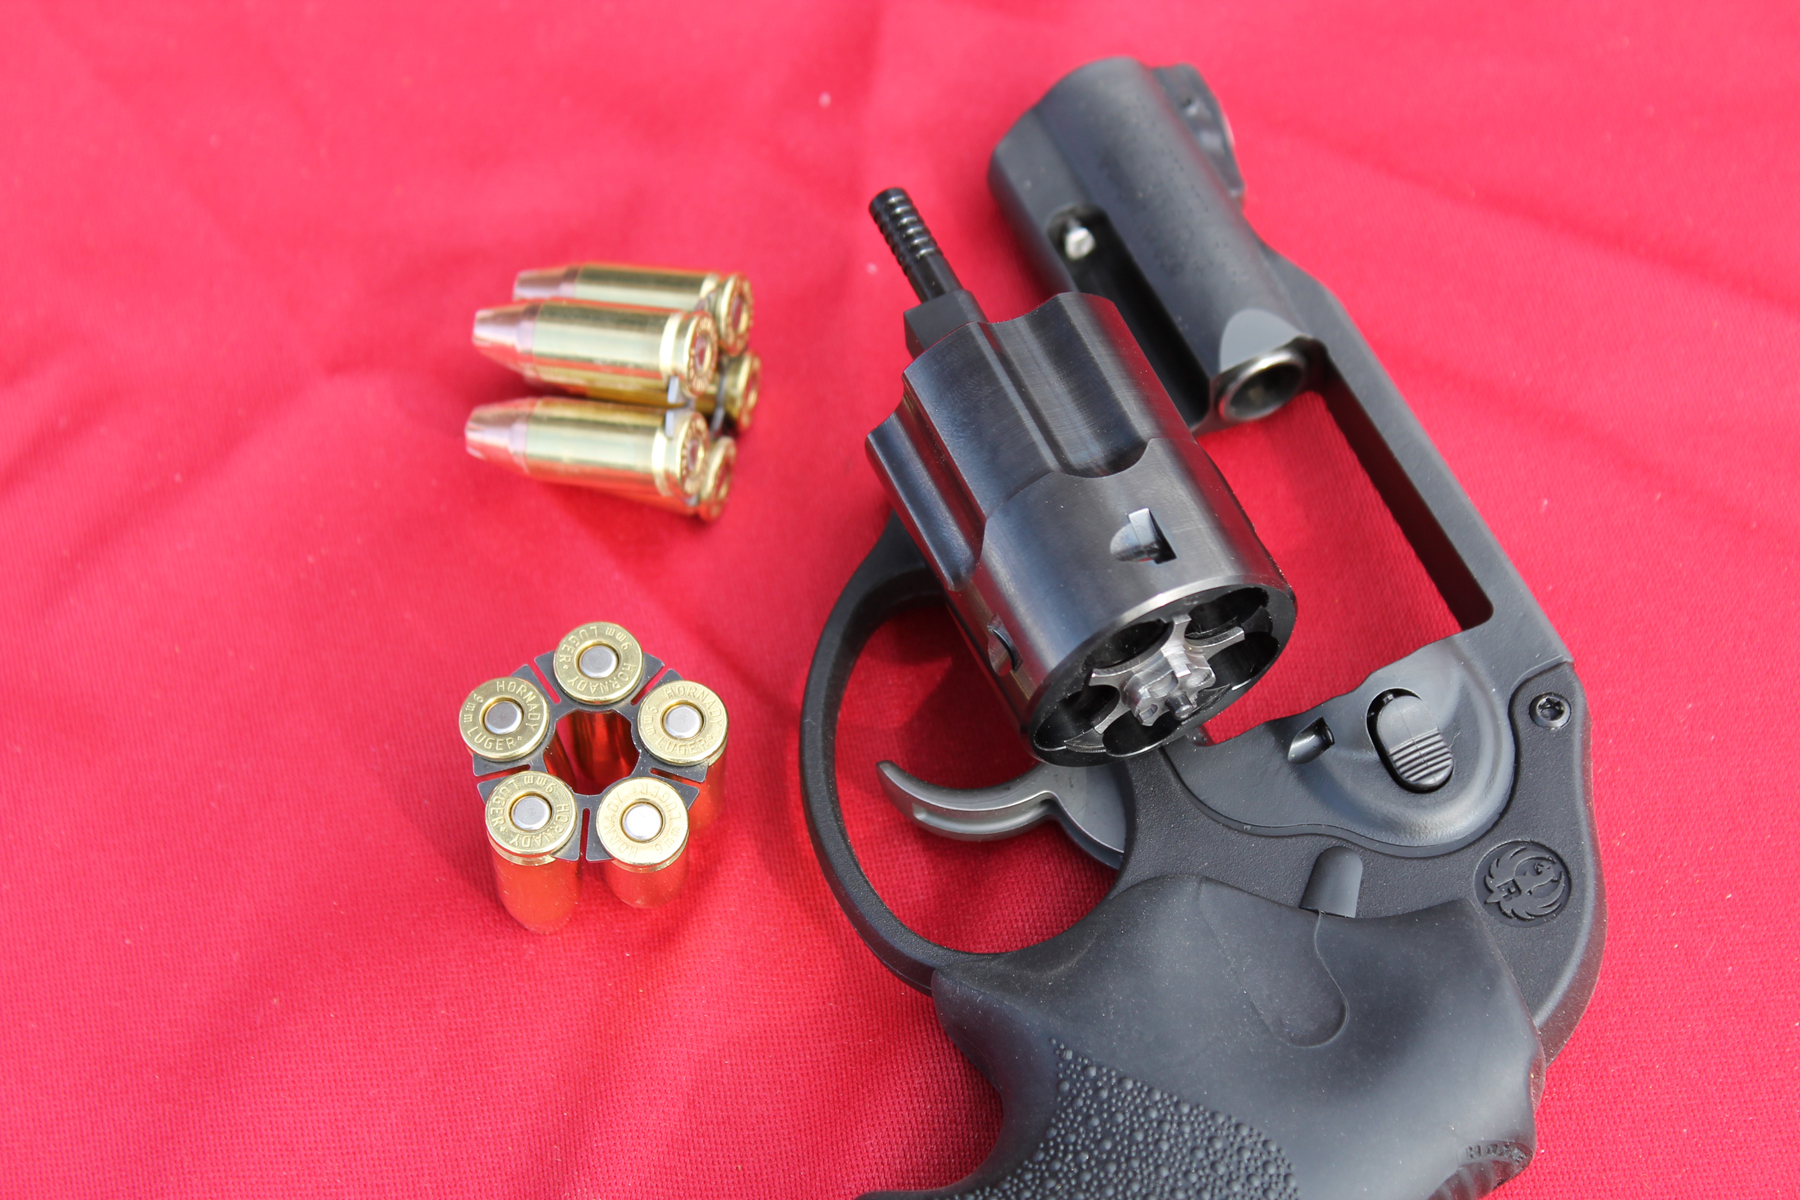 Ruger LCR and 9mm moon clips